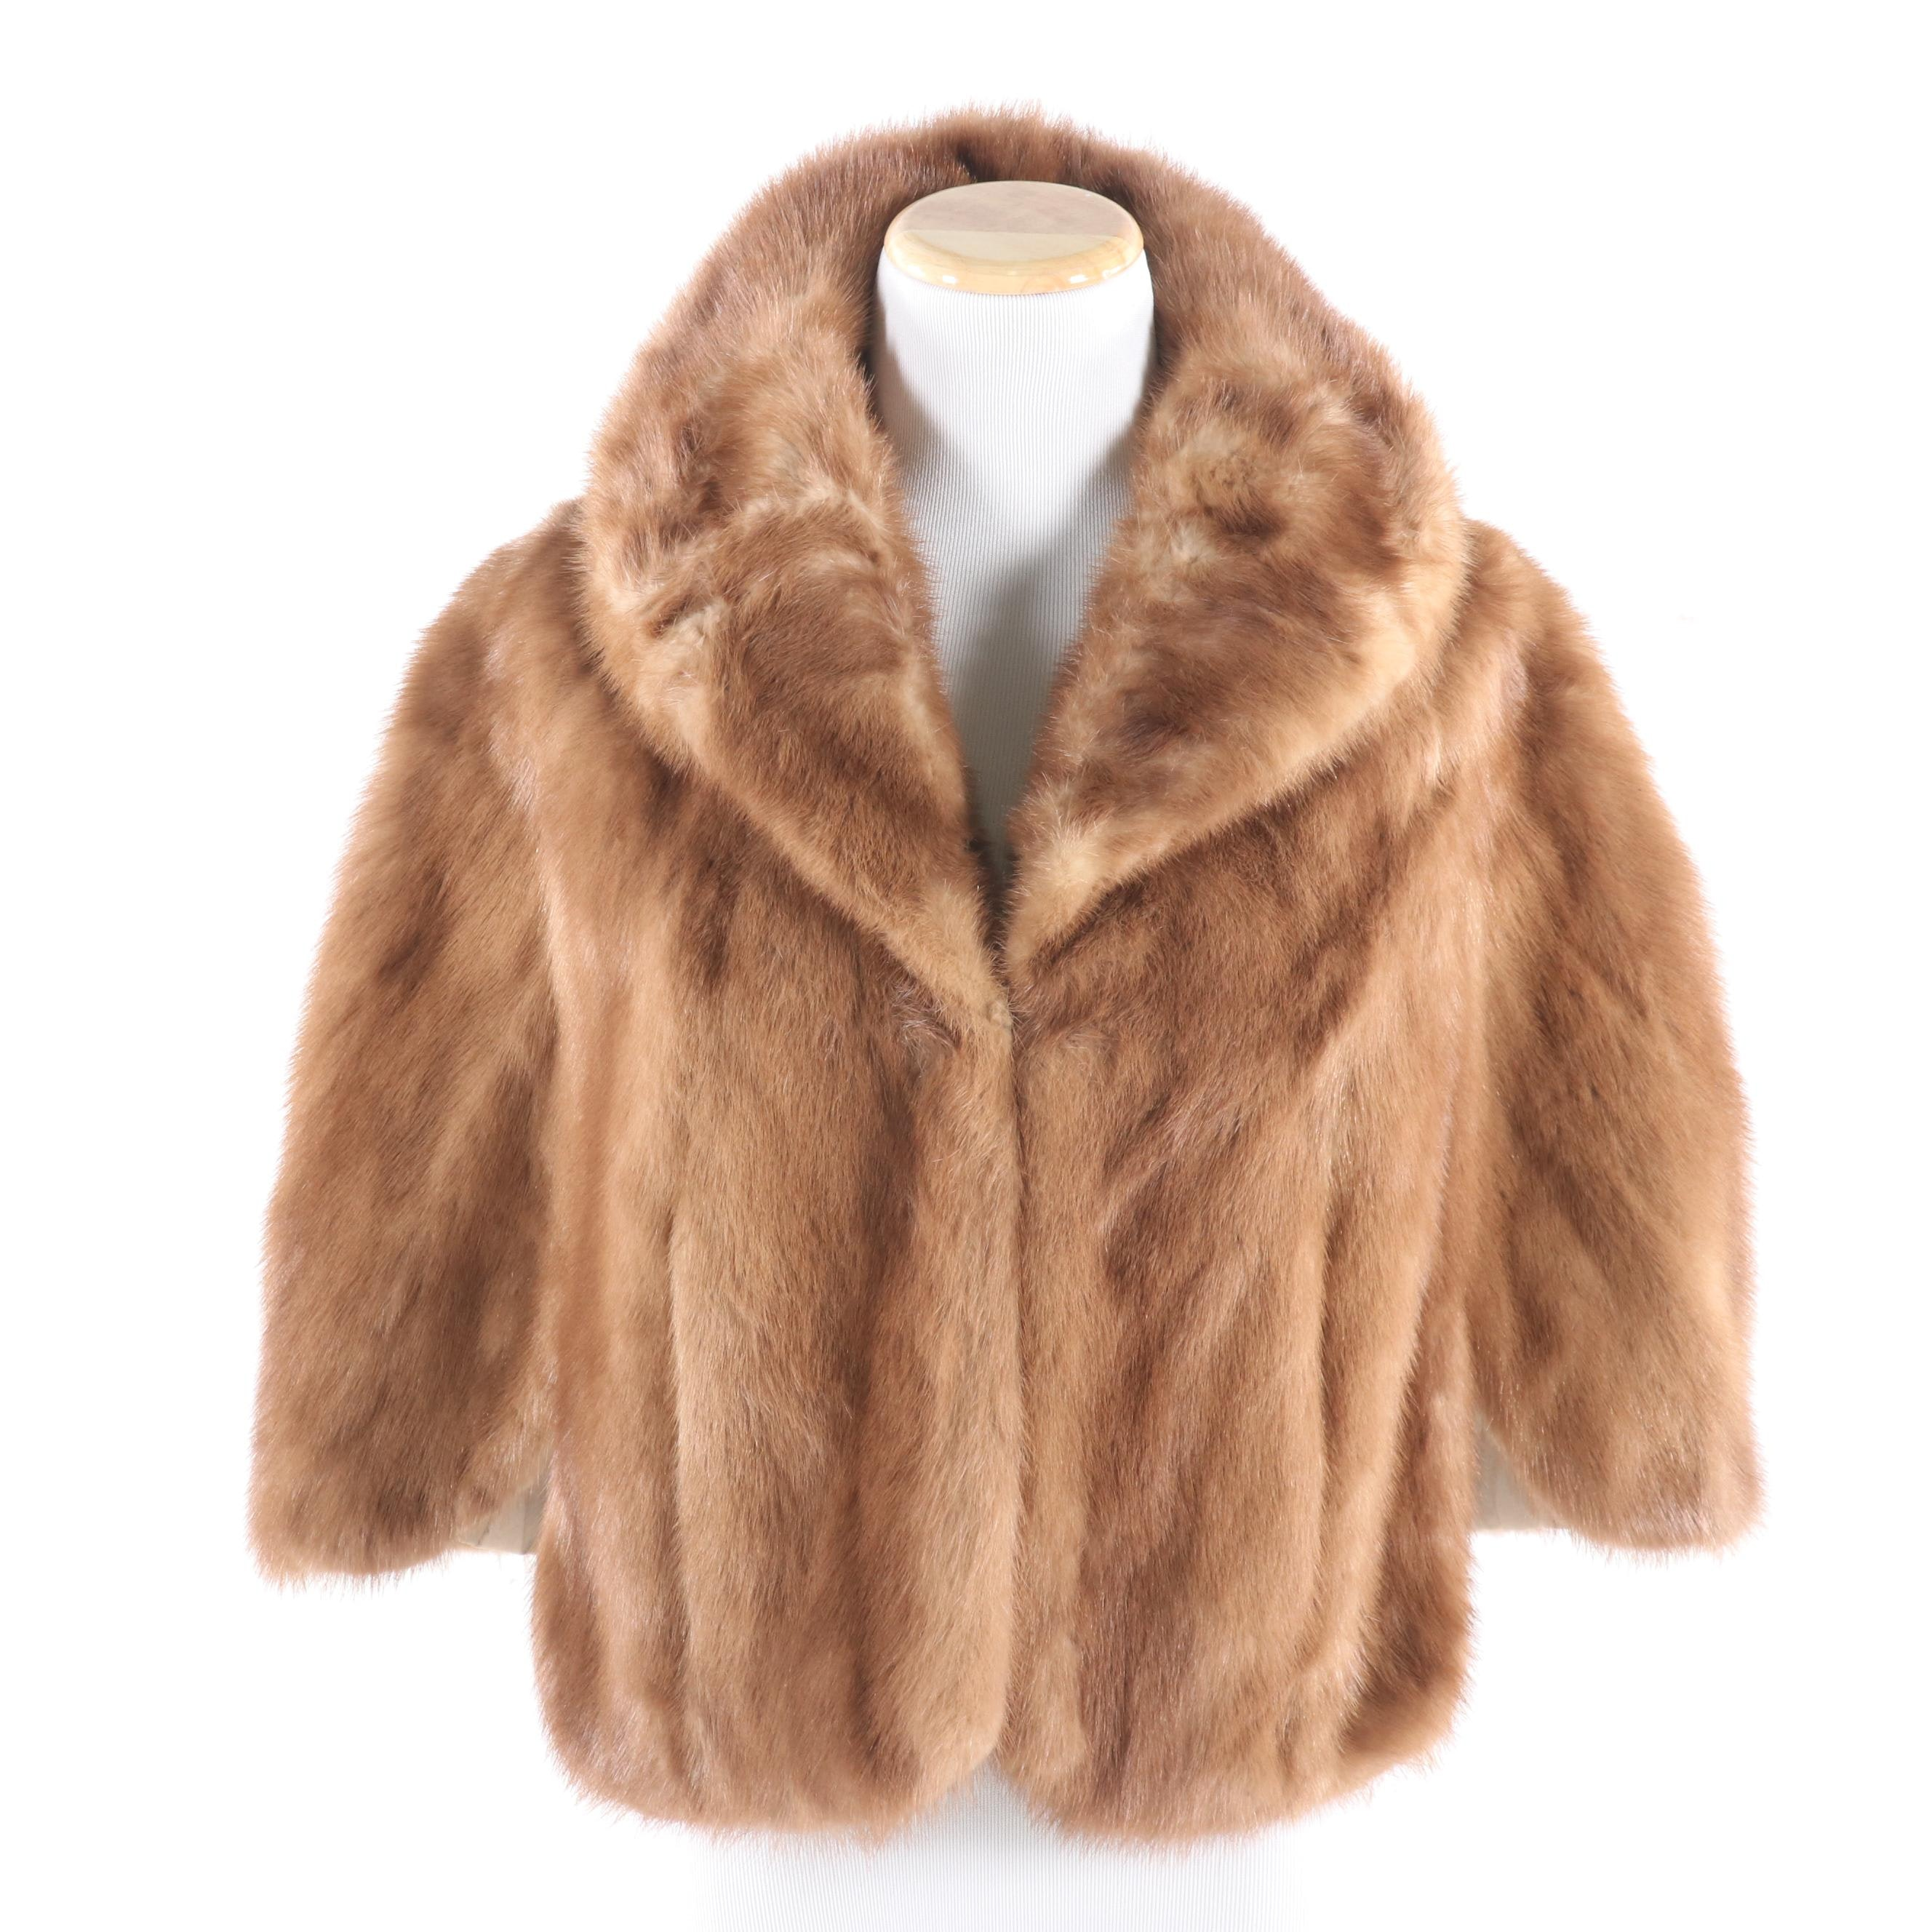 Natural Mink Fur Capelet by Three Rivers Furs, Mid-20th Century